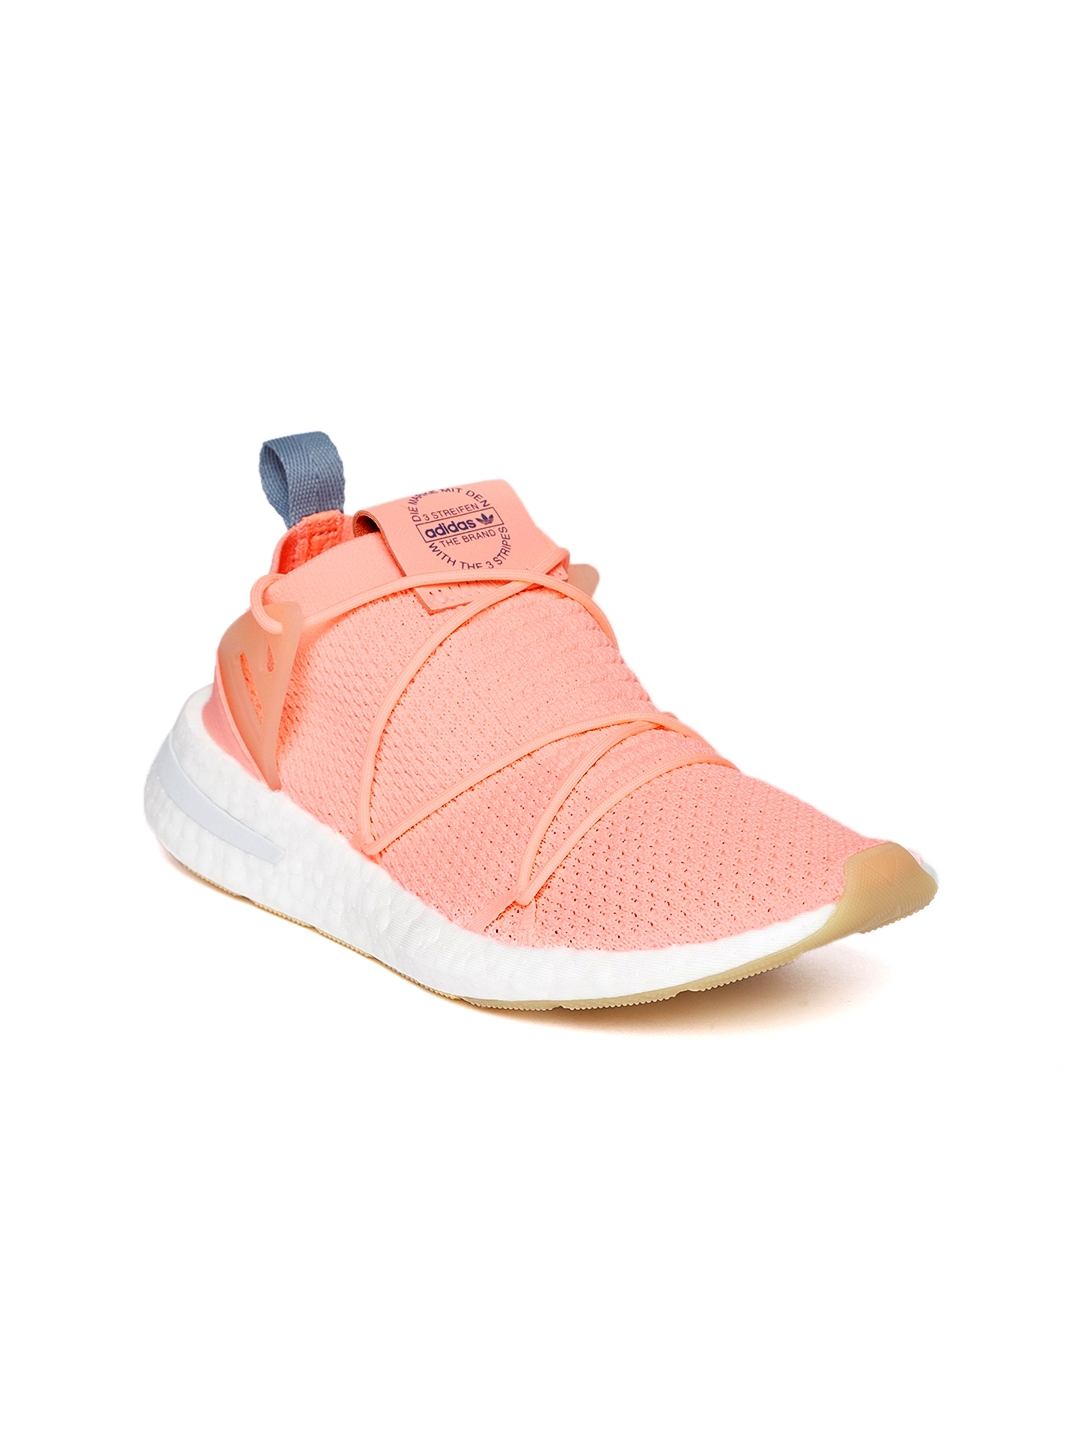 Buy ADIDAS Originals Women Peach Coloured Arkyn Primeknit Sneakers ... 9e697c9db0